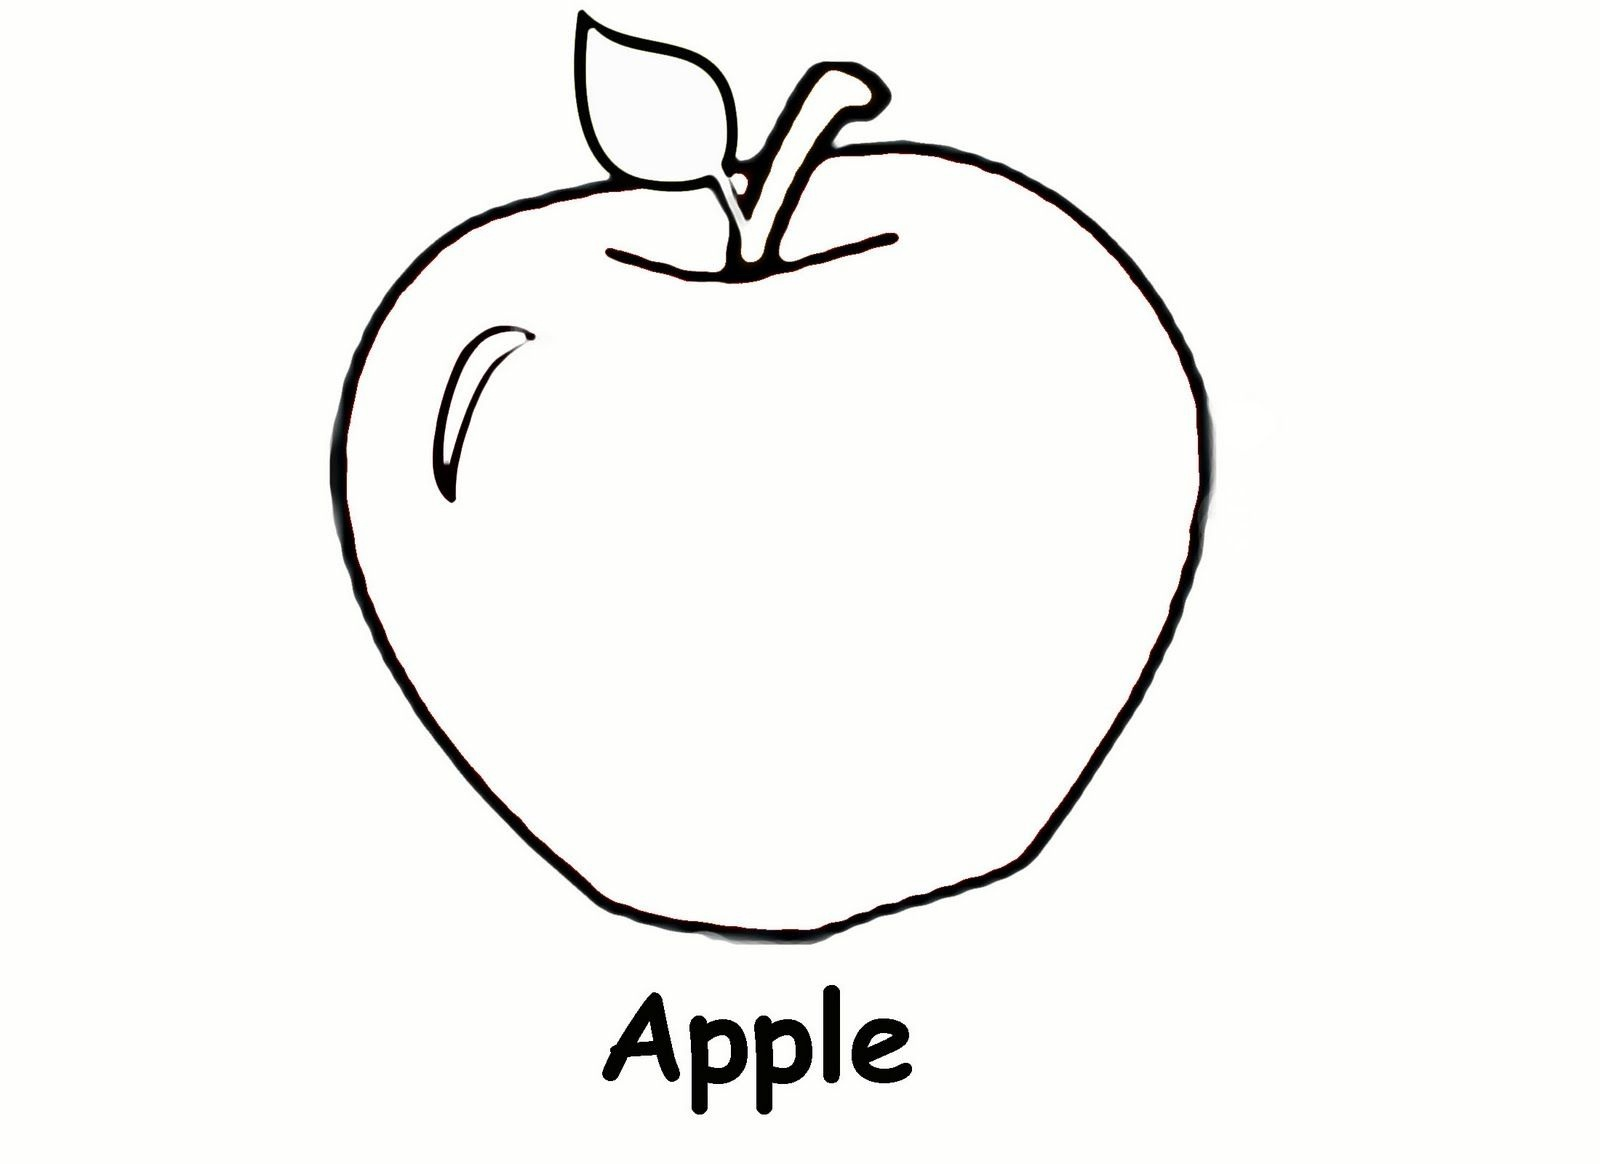 Free Printable Apple Coloring Pages For Kids | Coloring Book Pages - Free Printable Color Sheets For Preschool